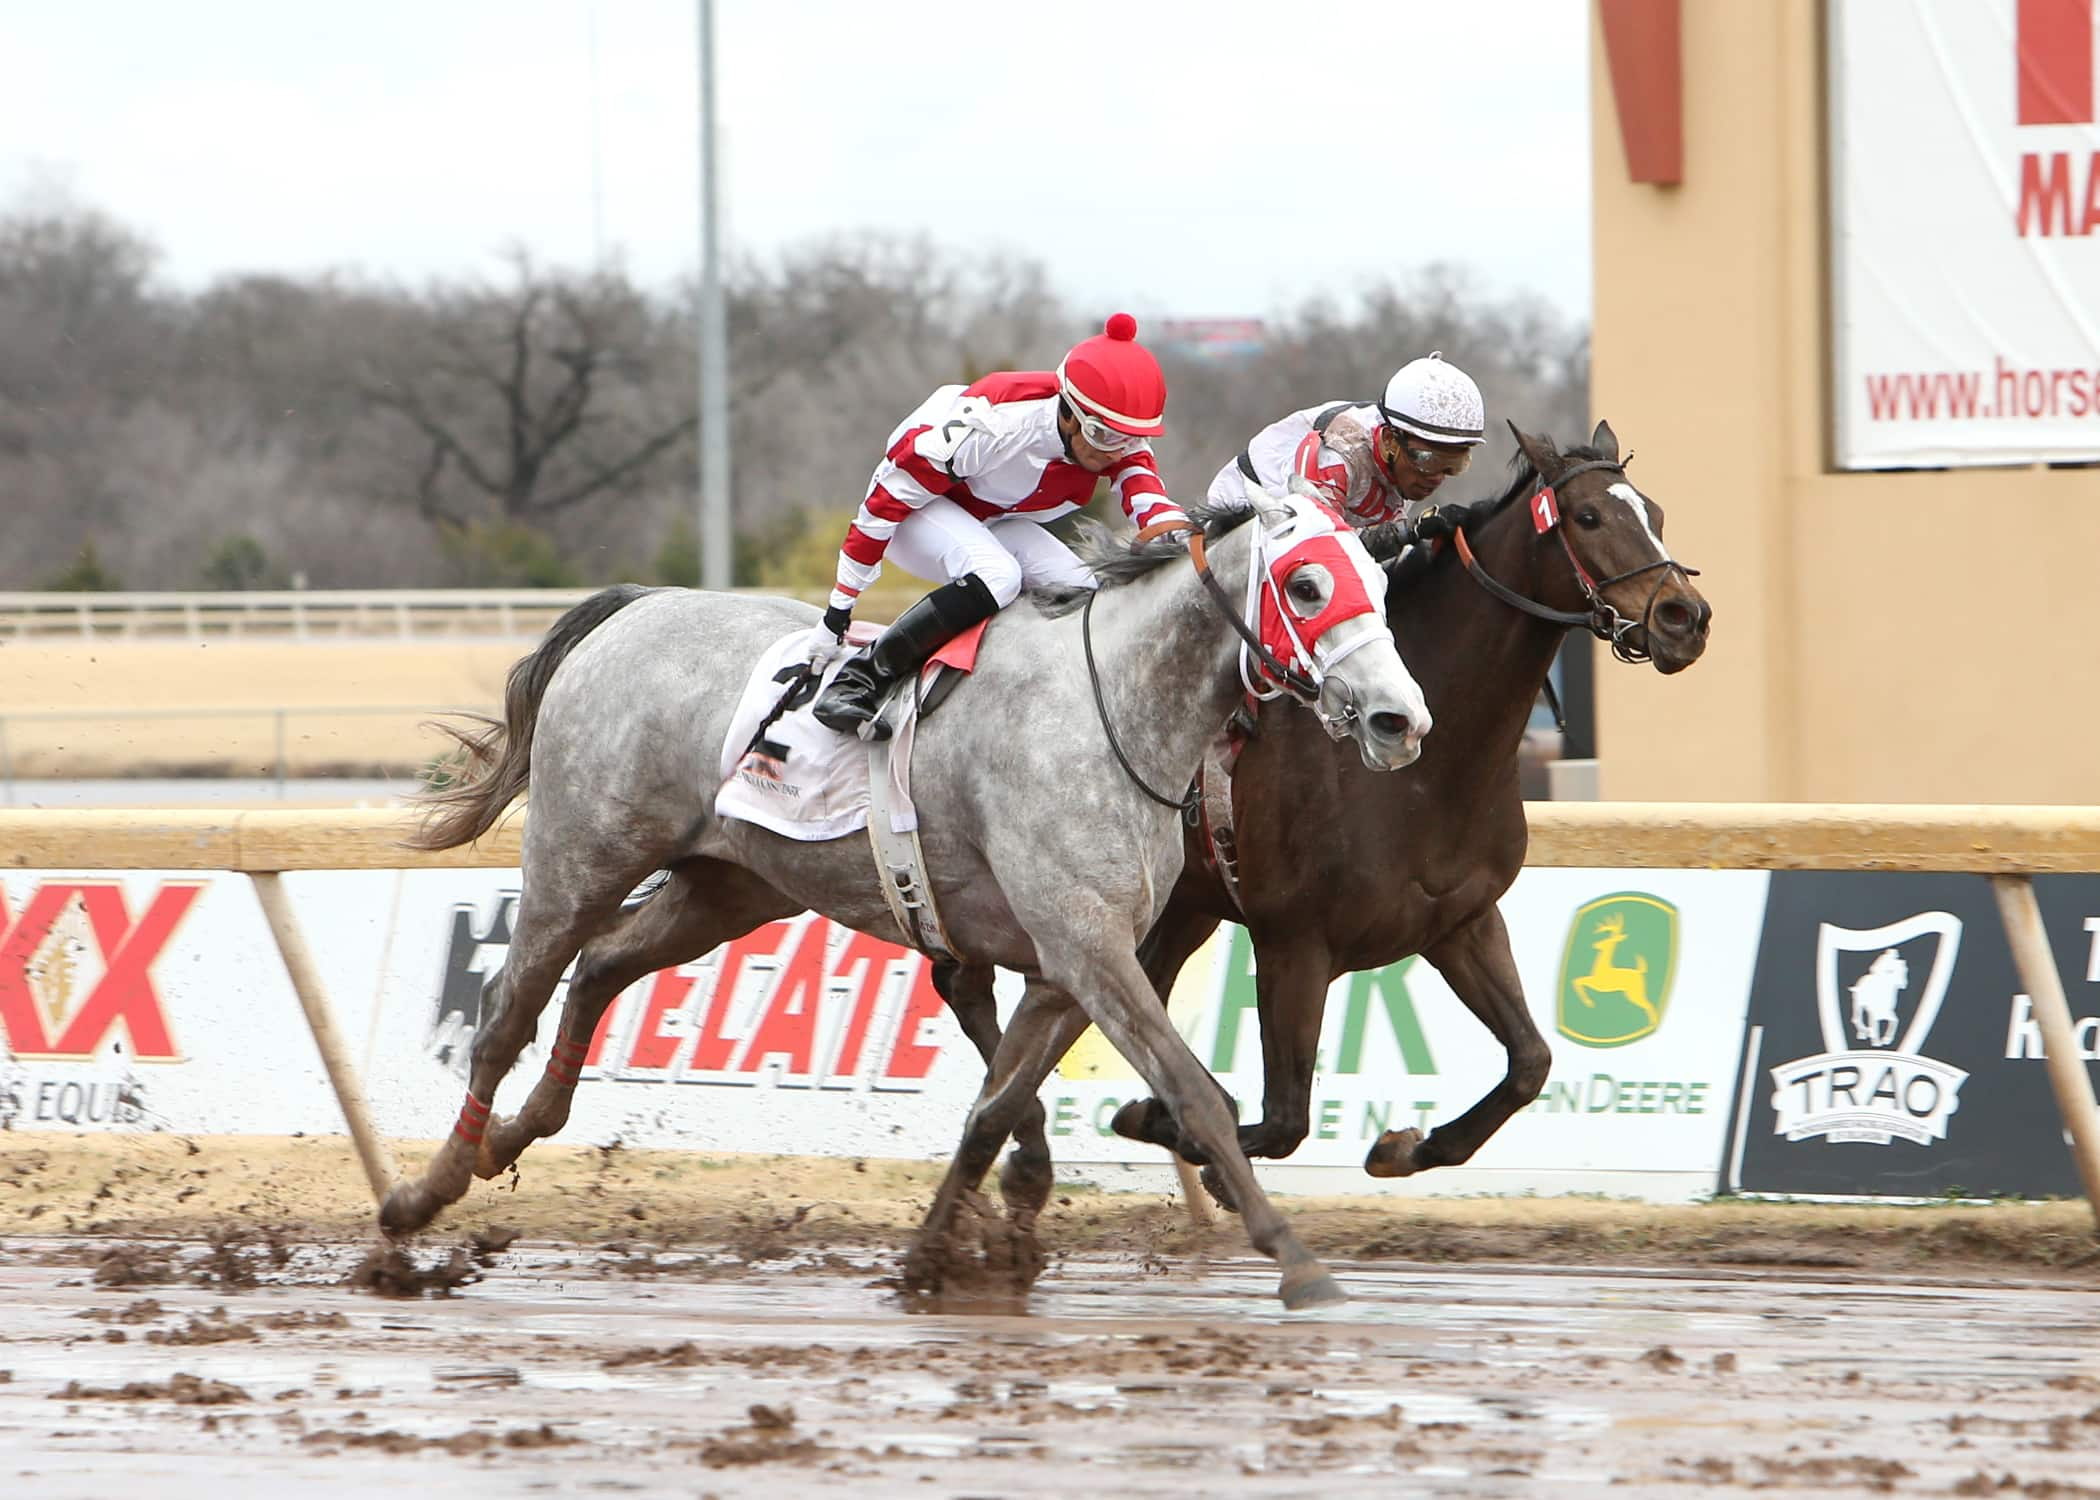 Cassatt goes gate to wire in the $102,300 She's All In Handicap at Remington Park - Photo Credit: Dustin Orona Photography